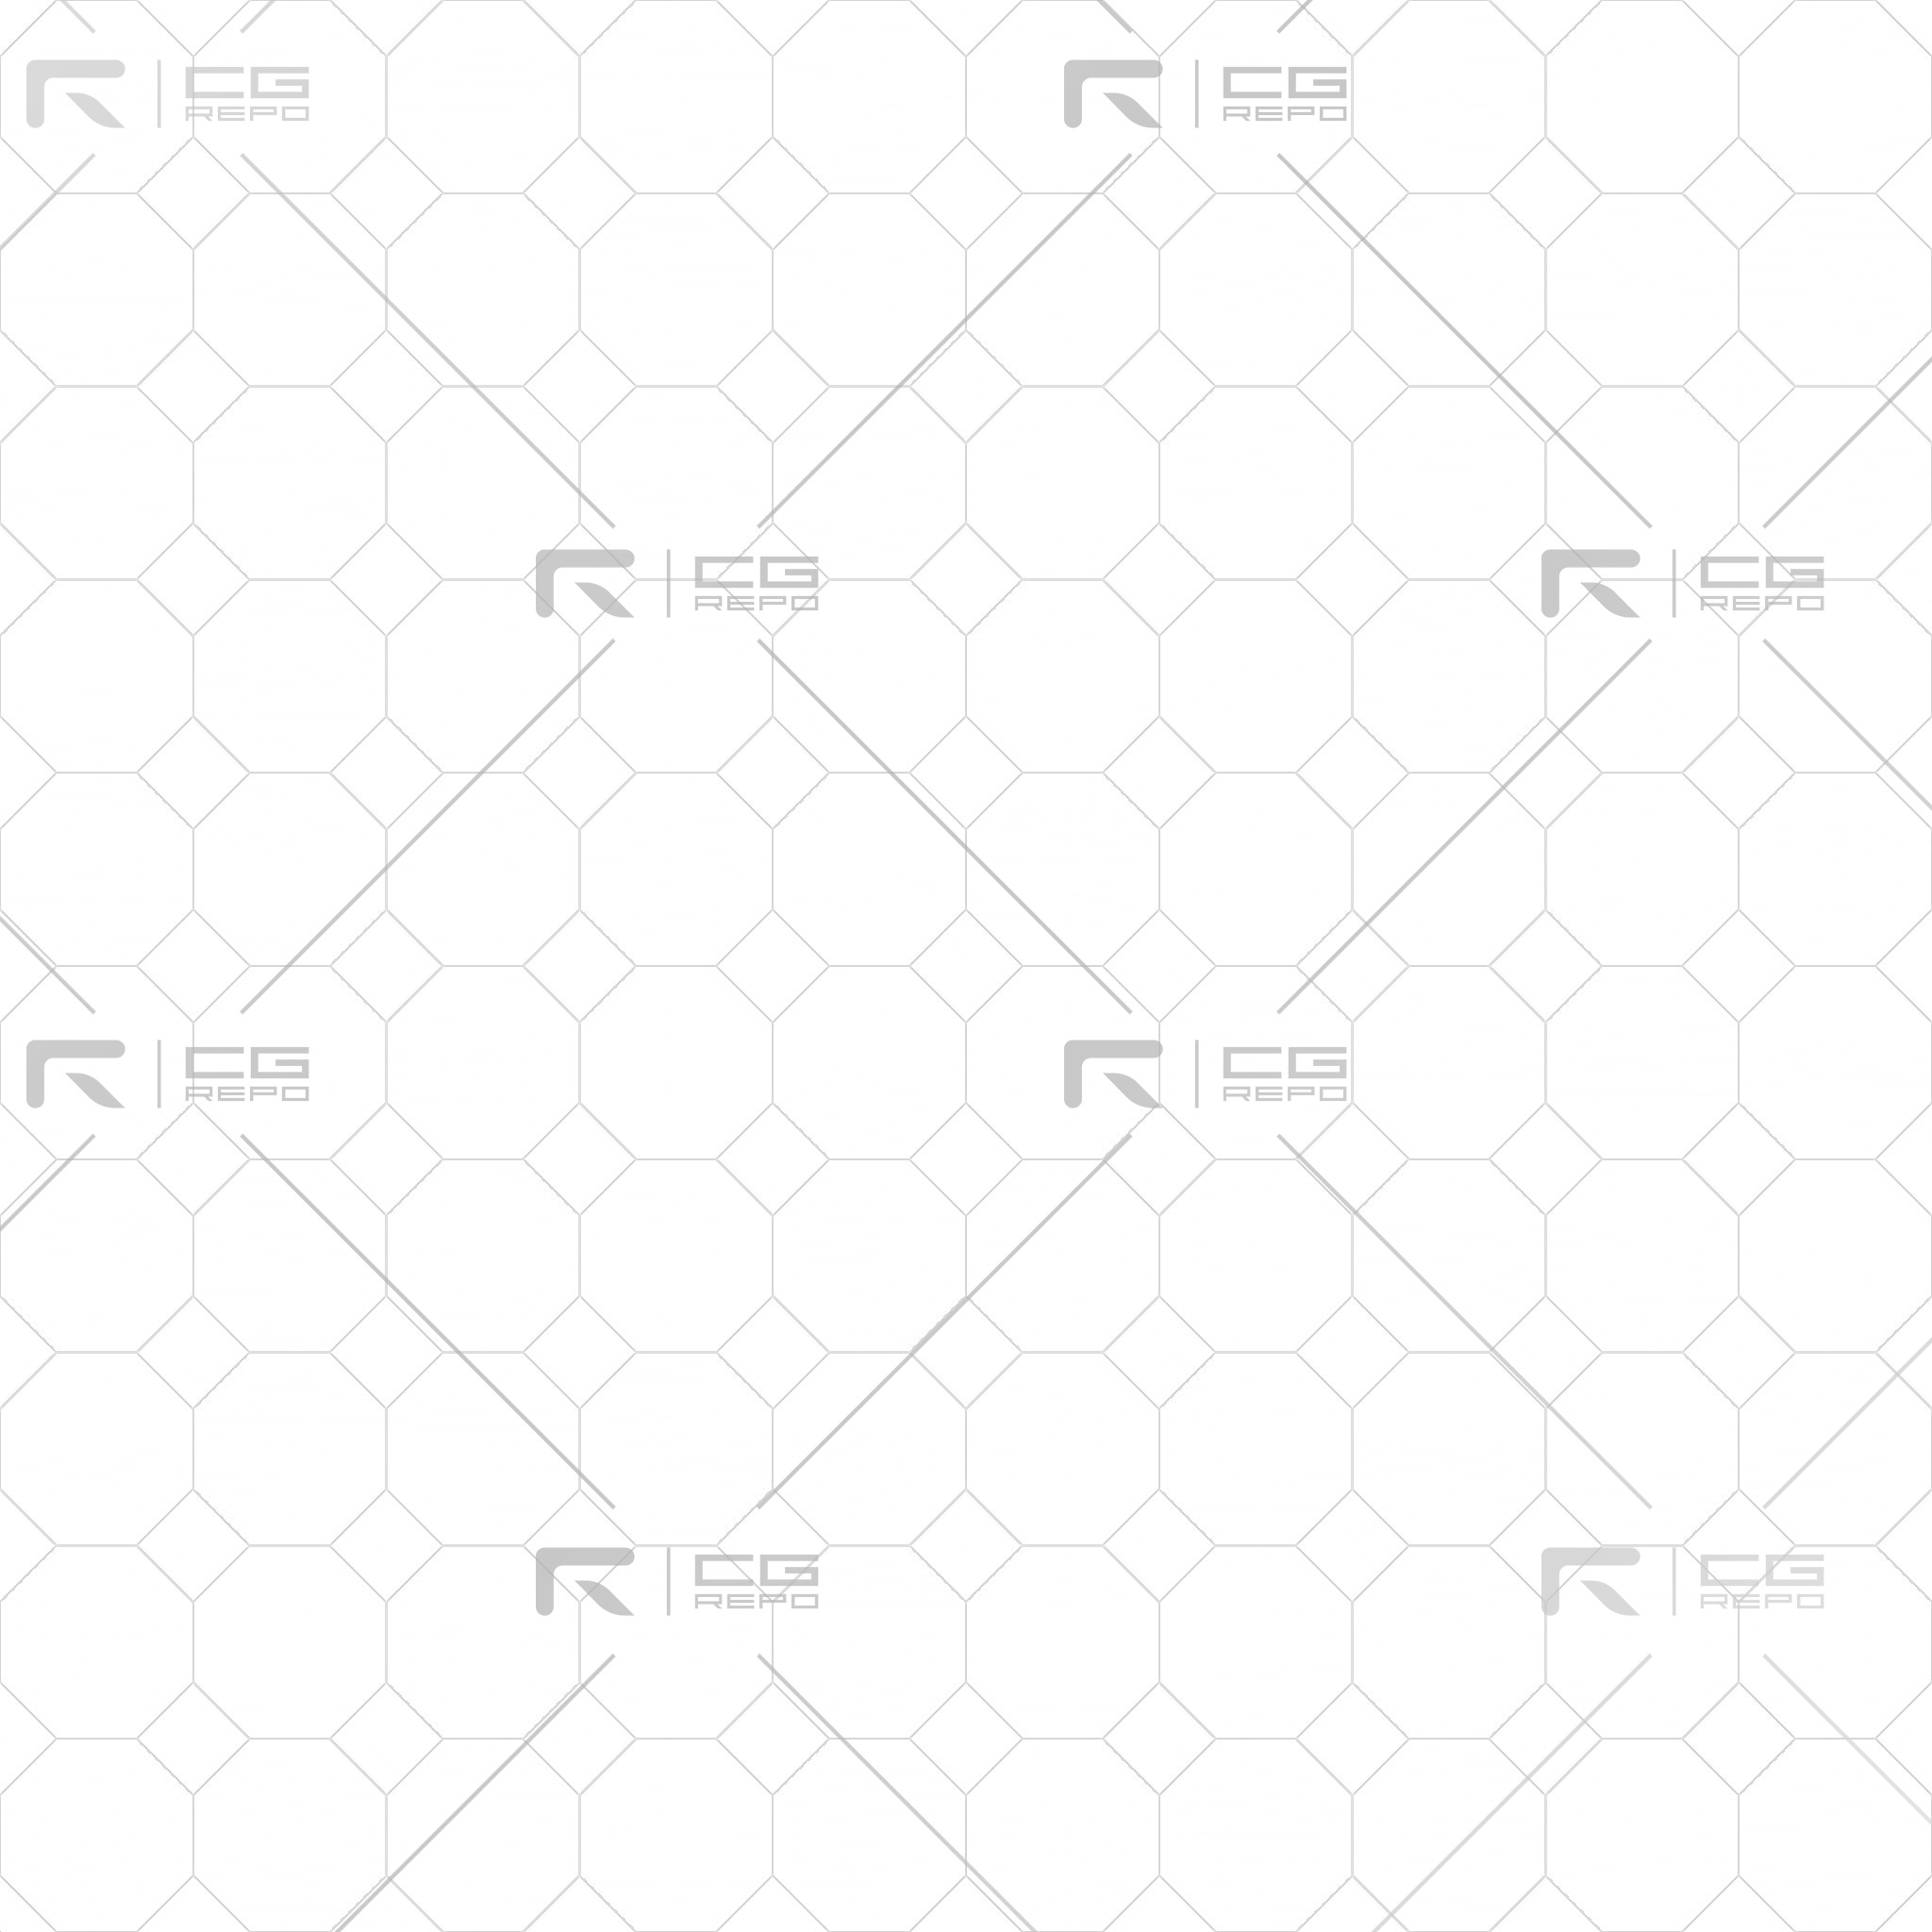 Cherry Vintage Octagons Ambient Occlusion Texture